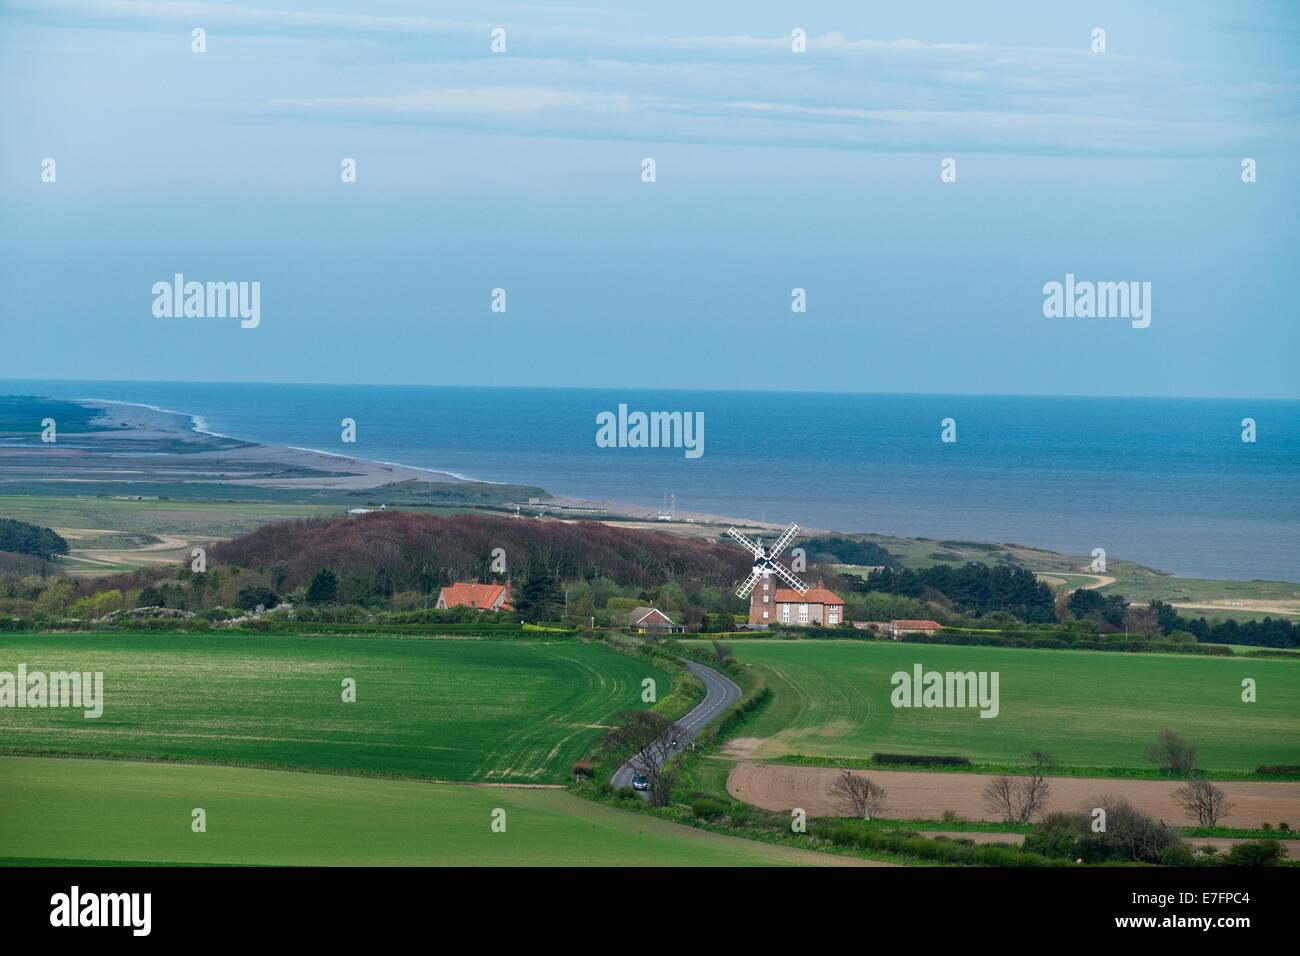 View of the North Norfolk coast showing Weybourne mill and shingle coastline. - Stock Image